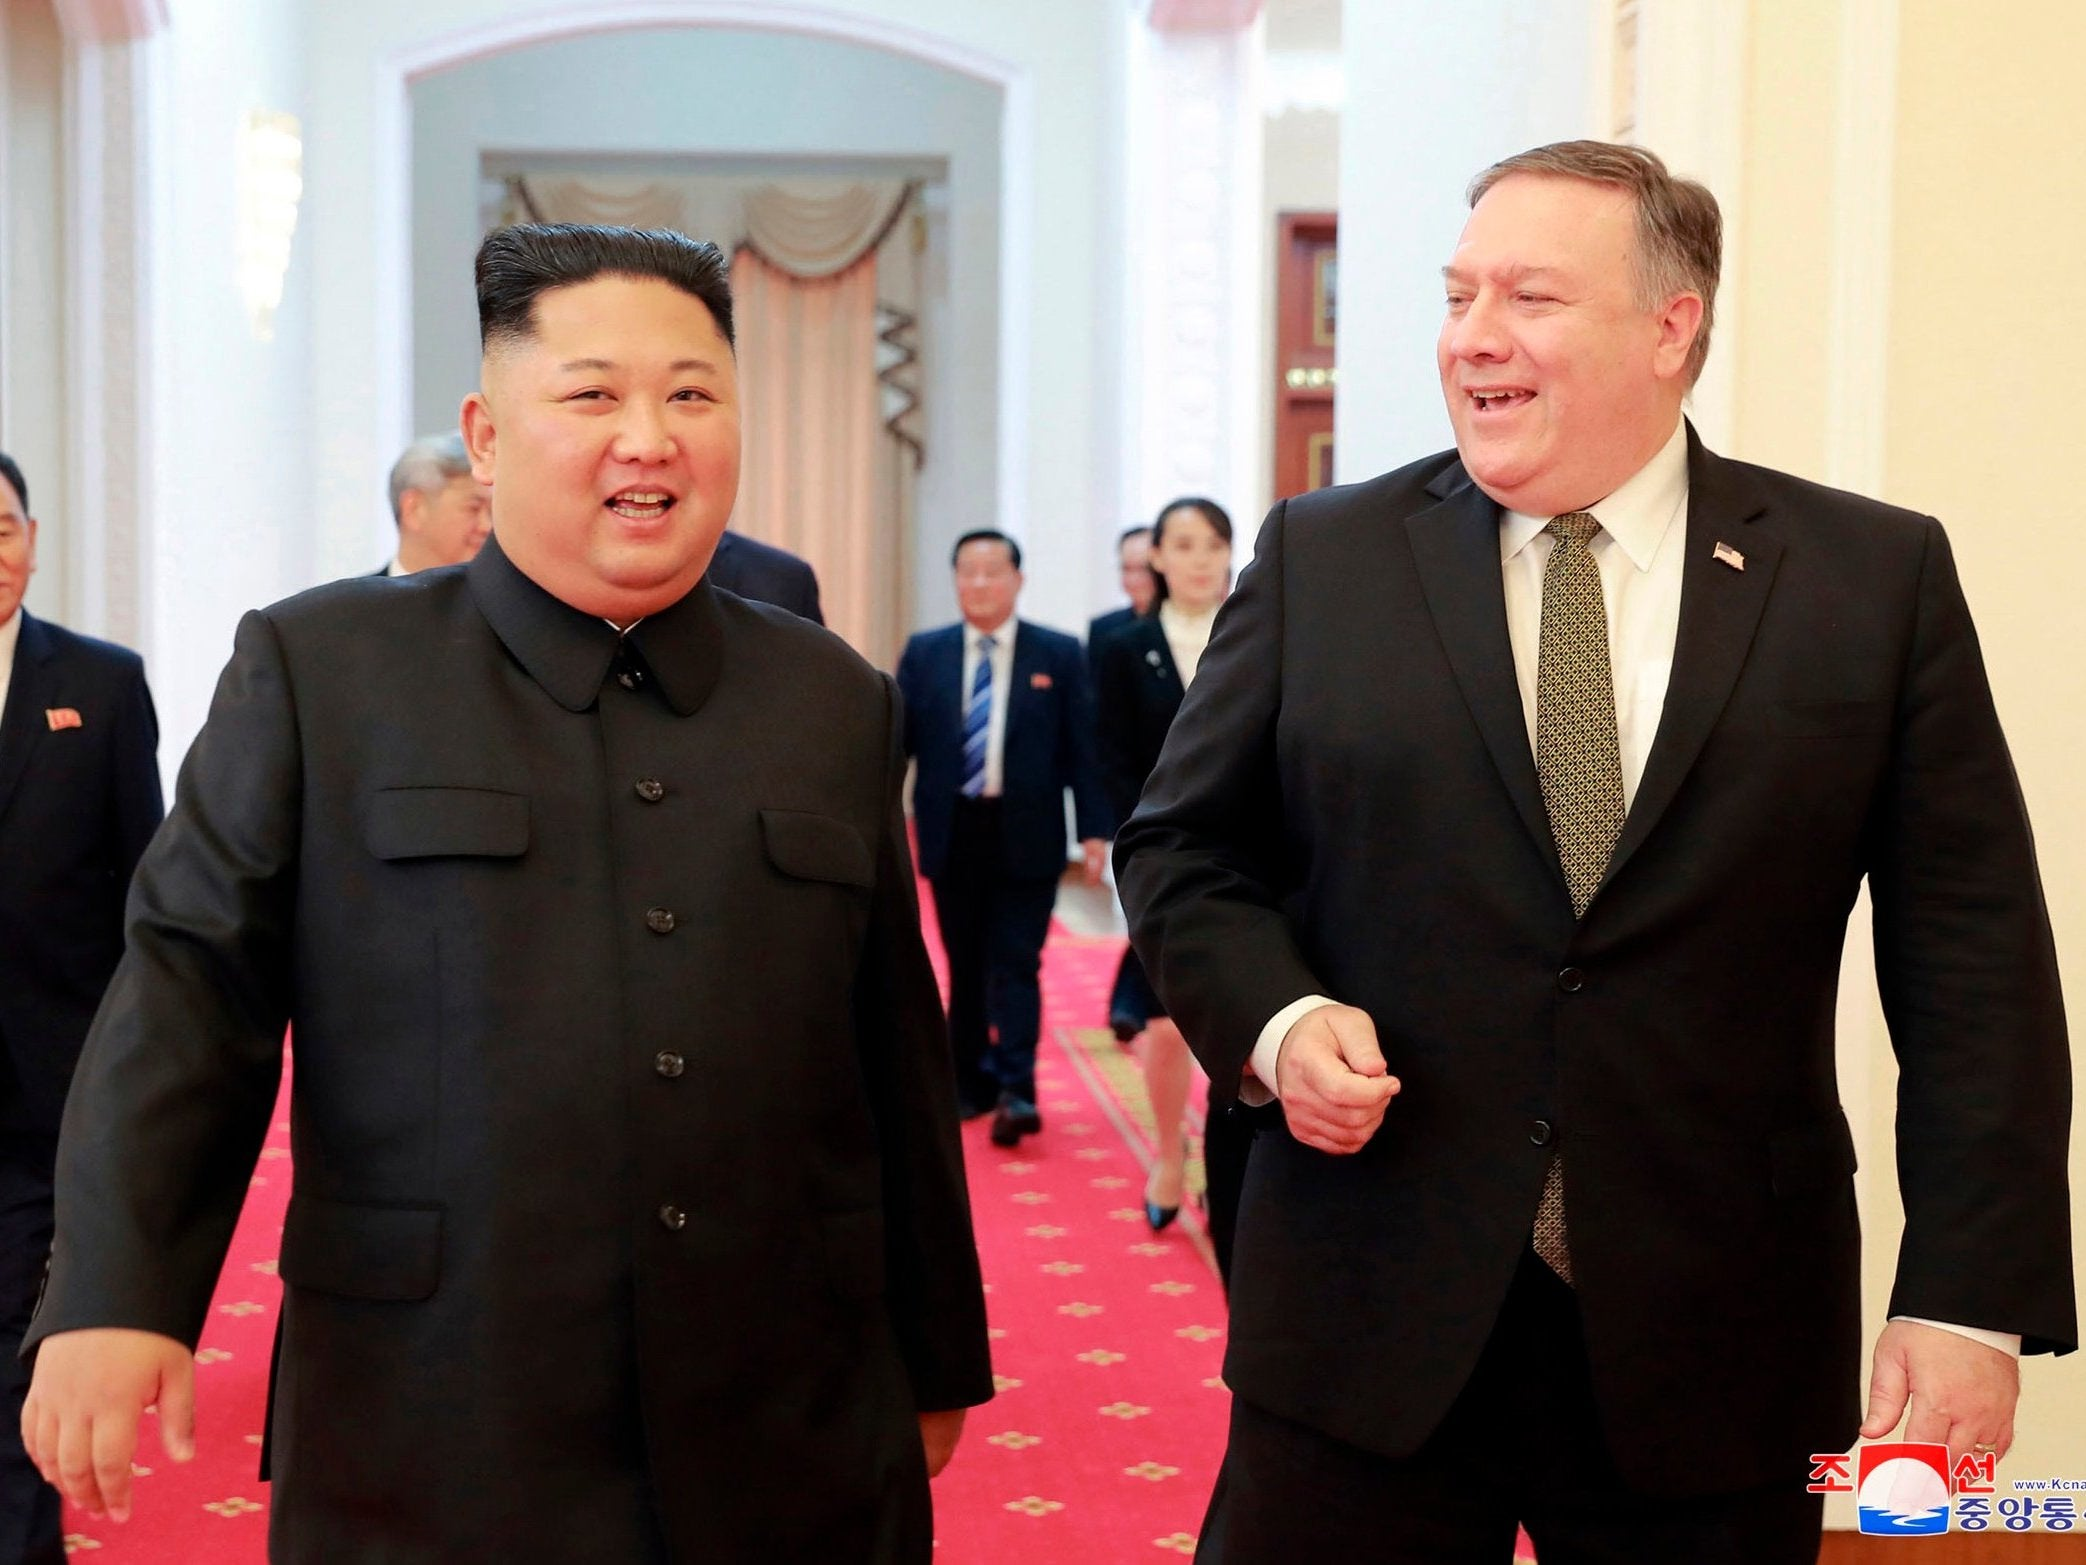 Meeting between Pompeo and North Korea cancelled last-minute without explanation